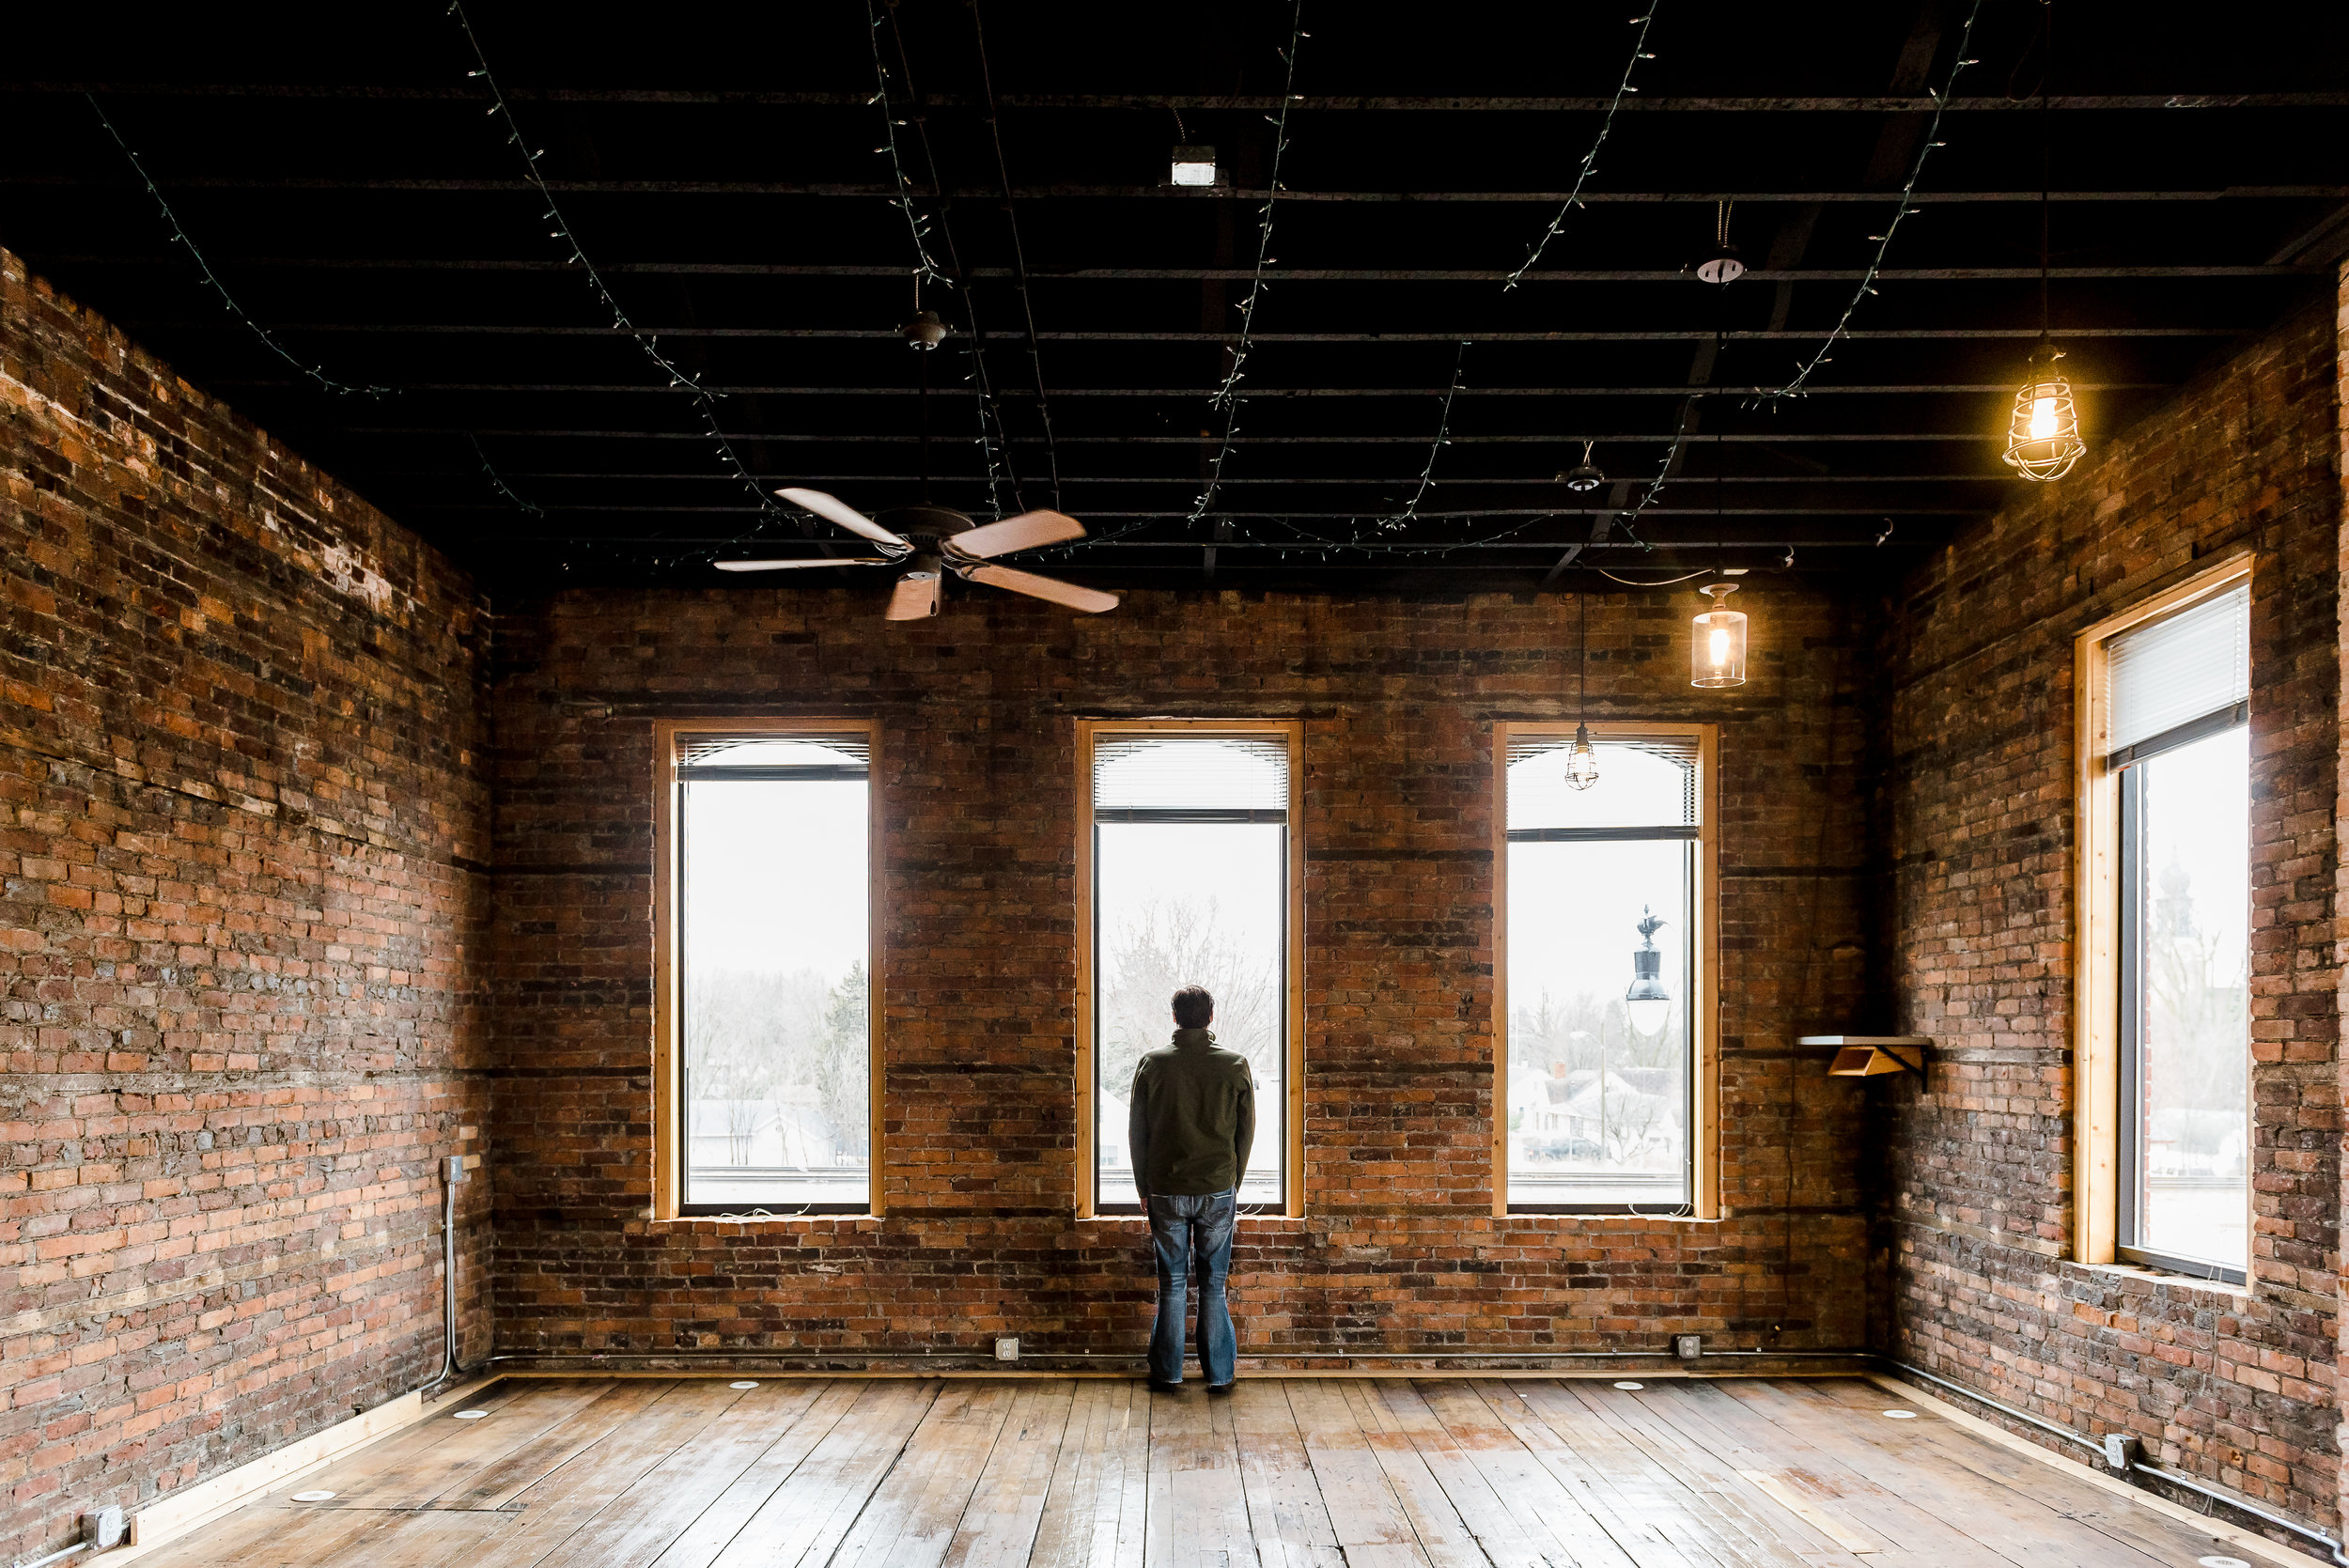 Another view of the studio space, with Nathan for perspective.  LOVE the soaring 12' ceilings and huge windows!